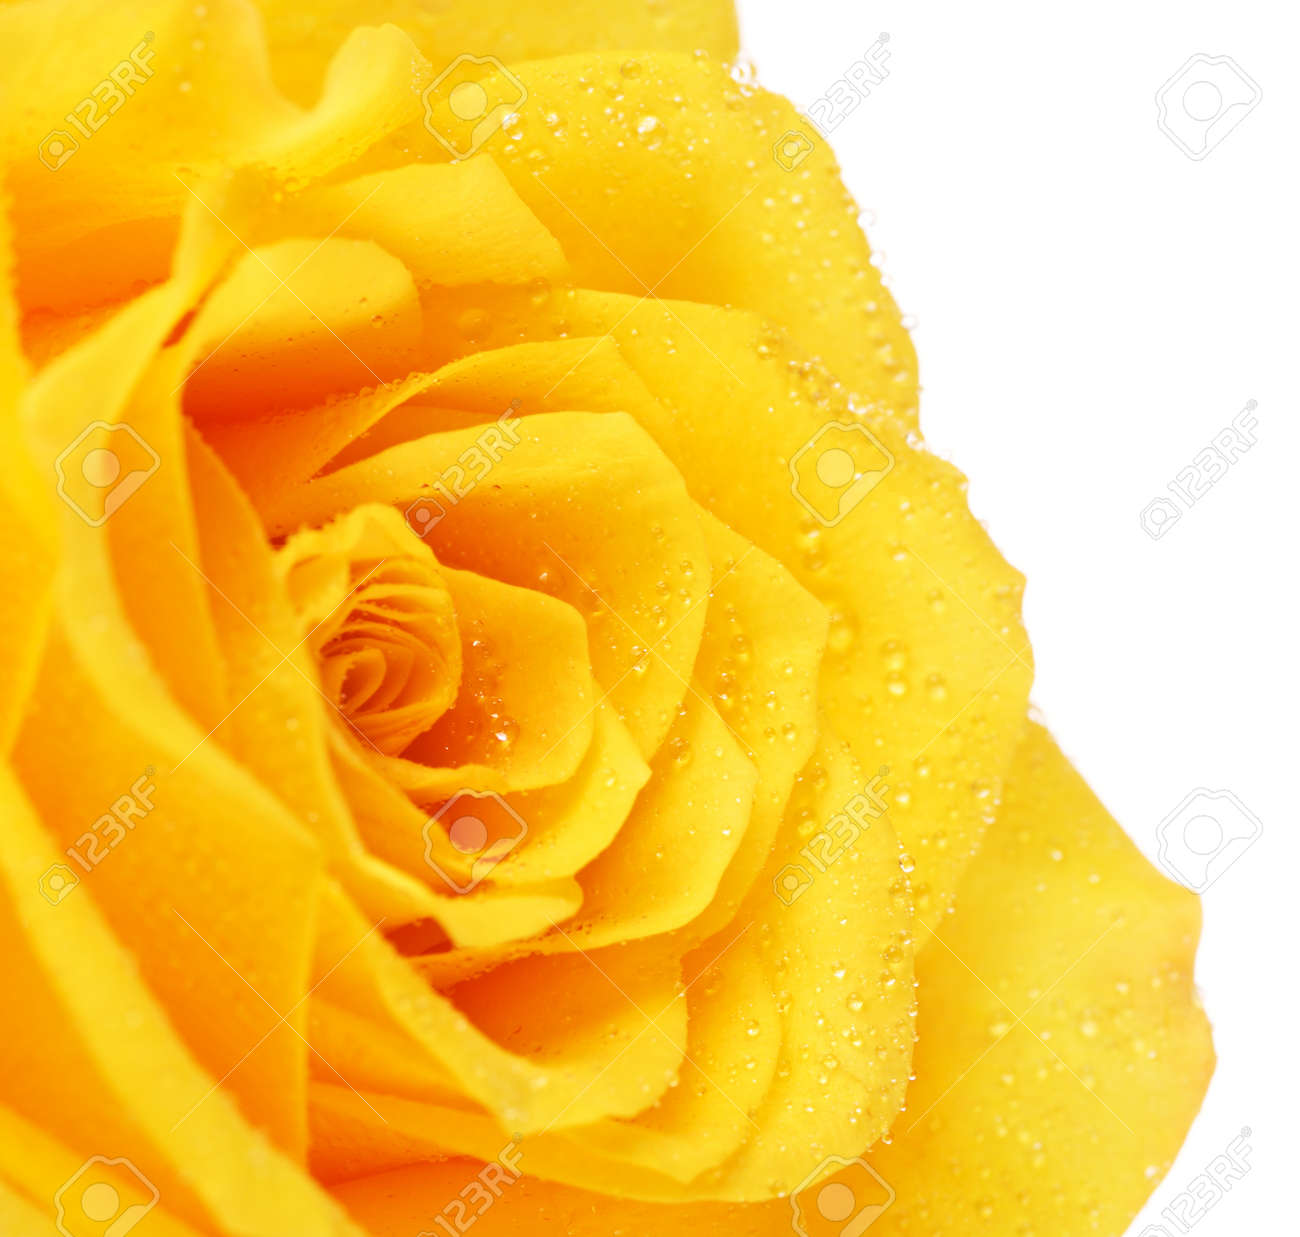 Single Yellow Rose Flower Isolated On White Close Up Stock Photo